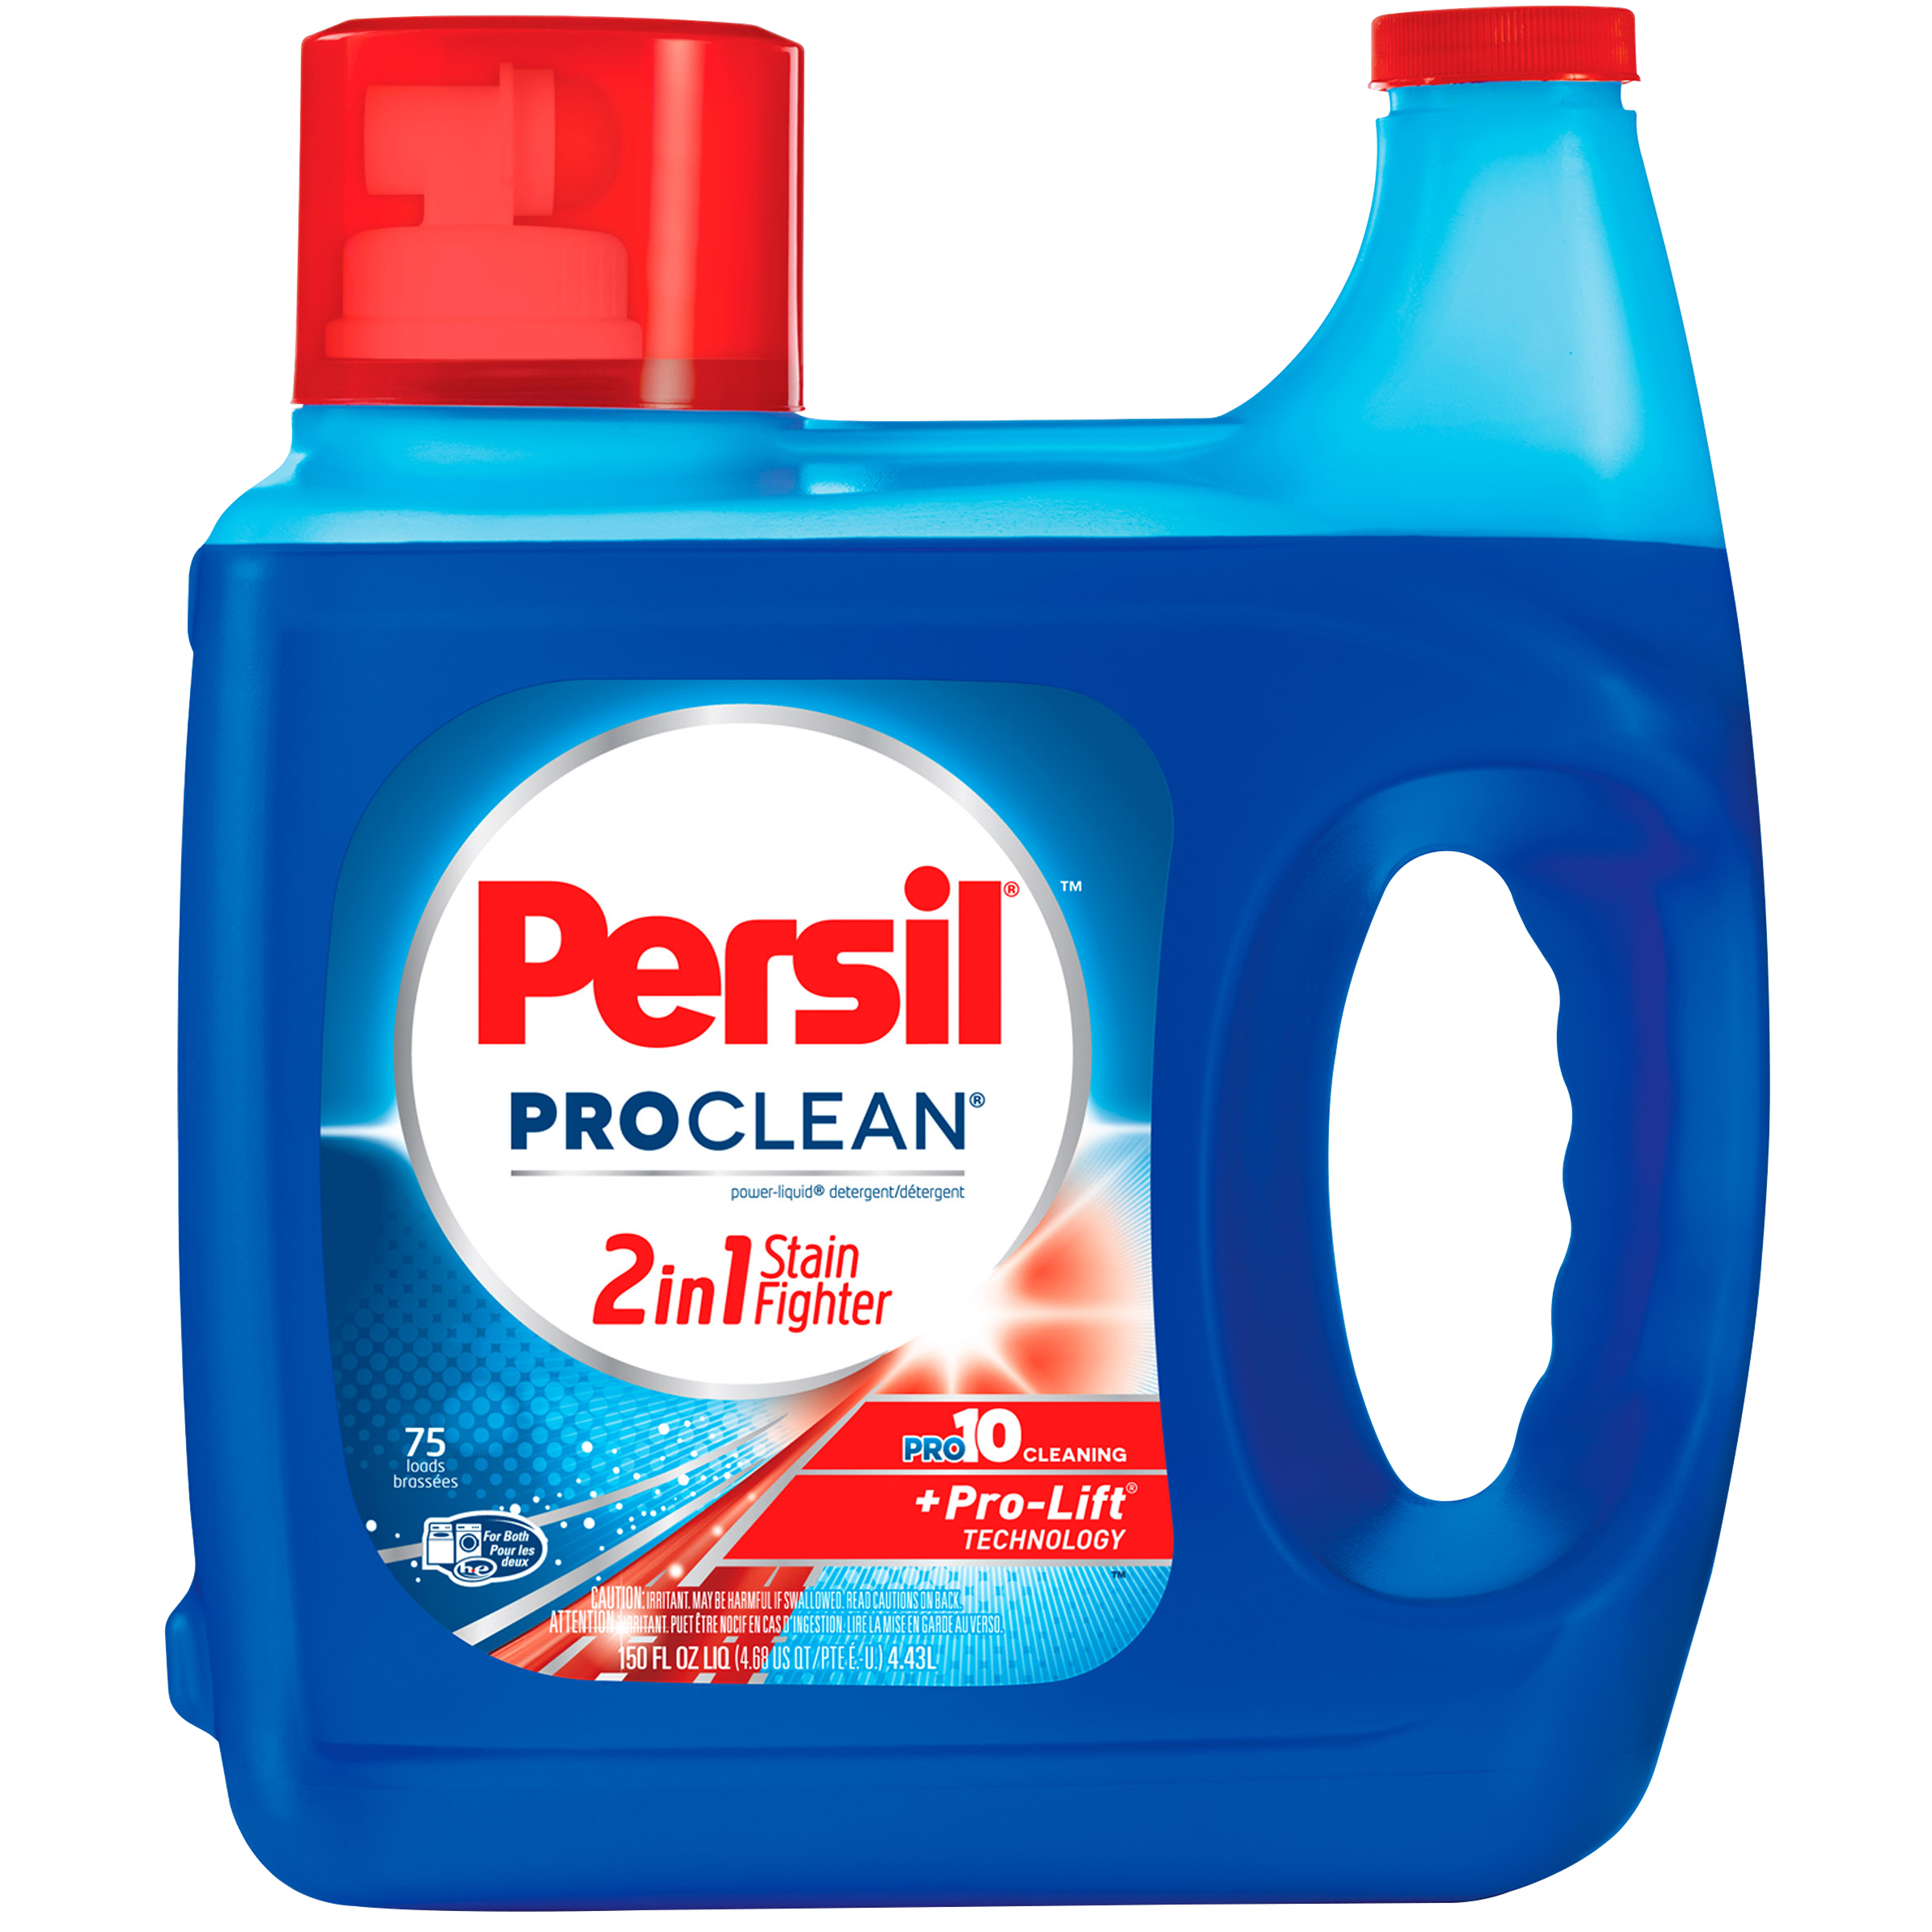 Persil ProClean 2in1 StainFighter Liquid Laundry Detergent, 150 Fluid Ounces, 75 Loads